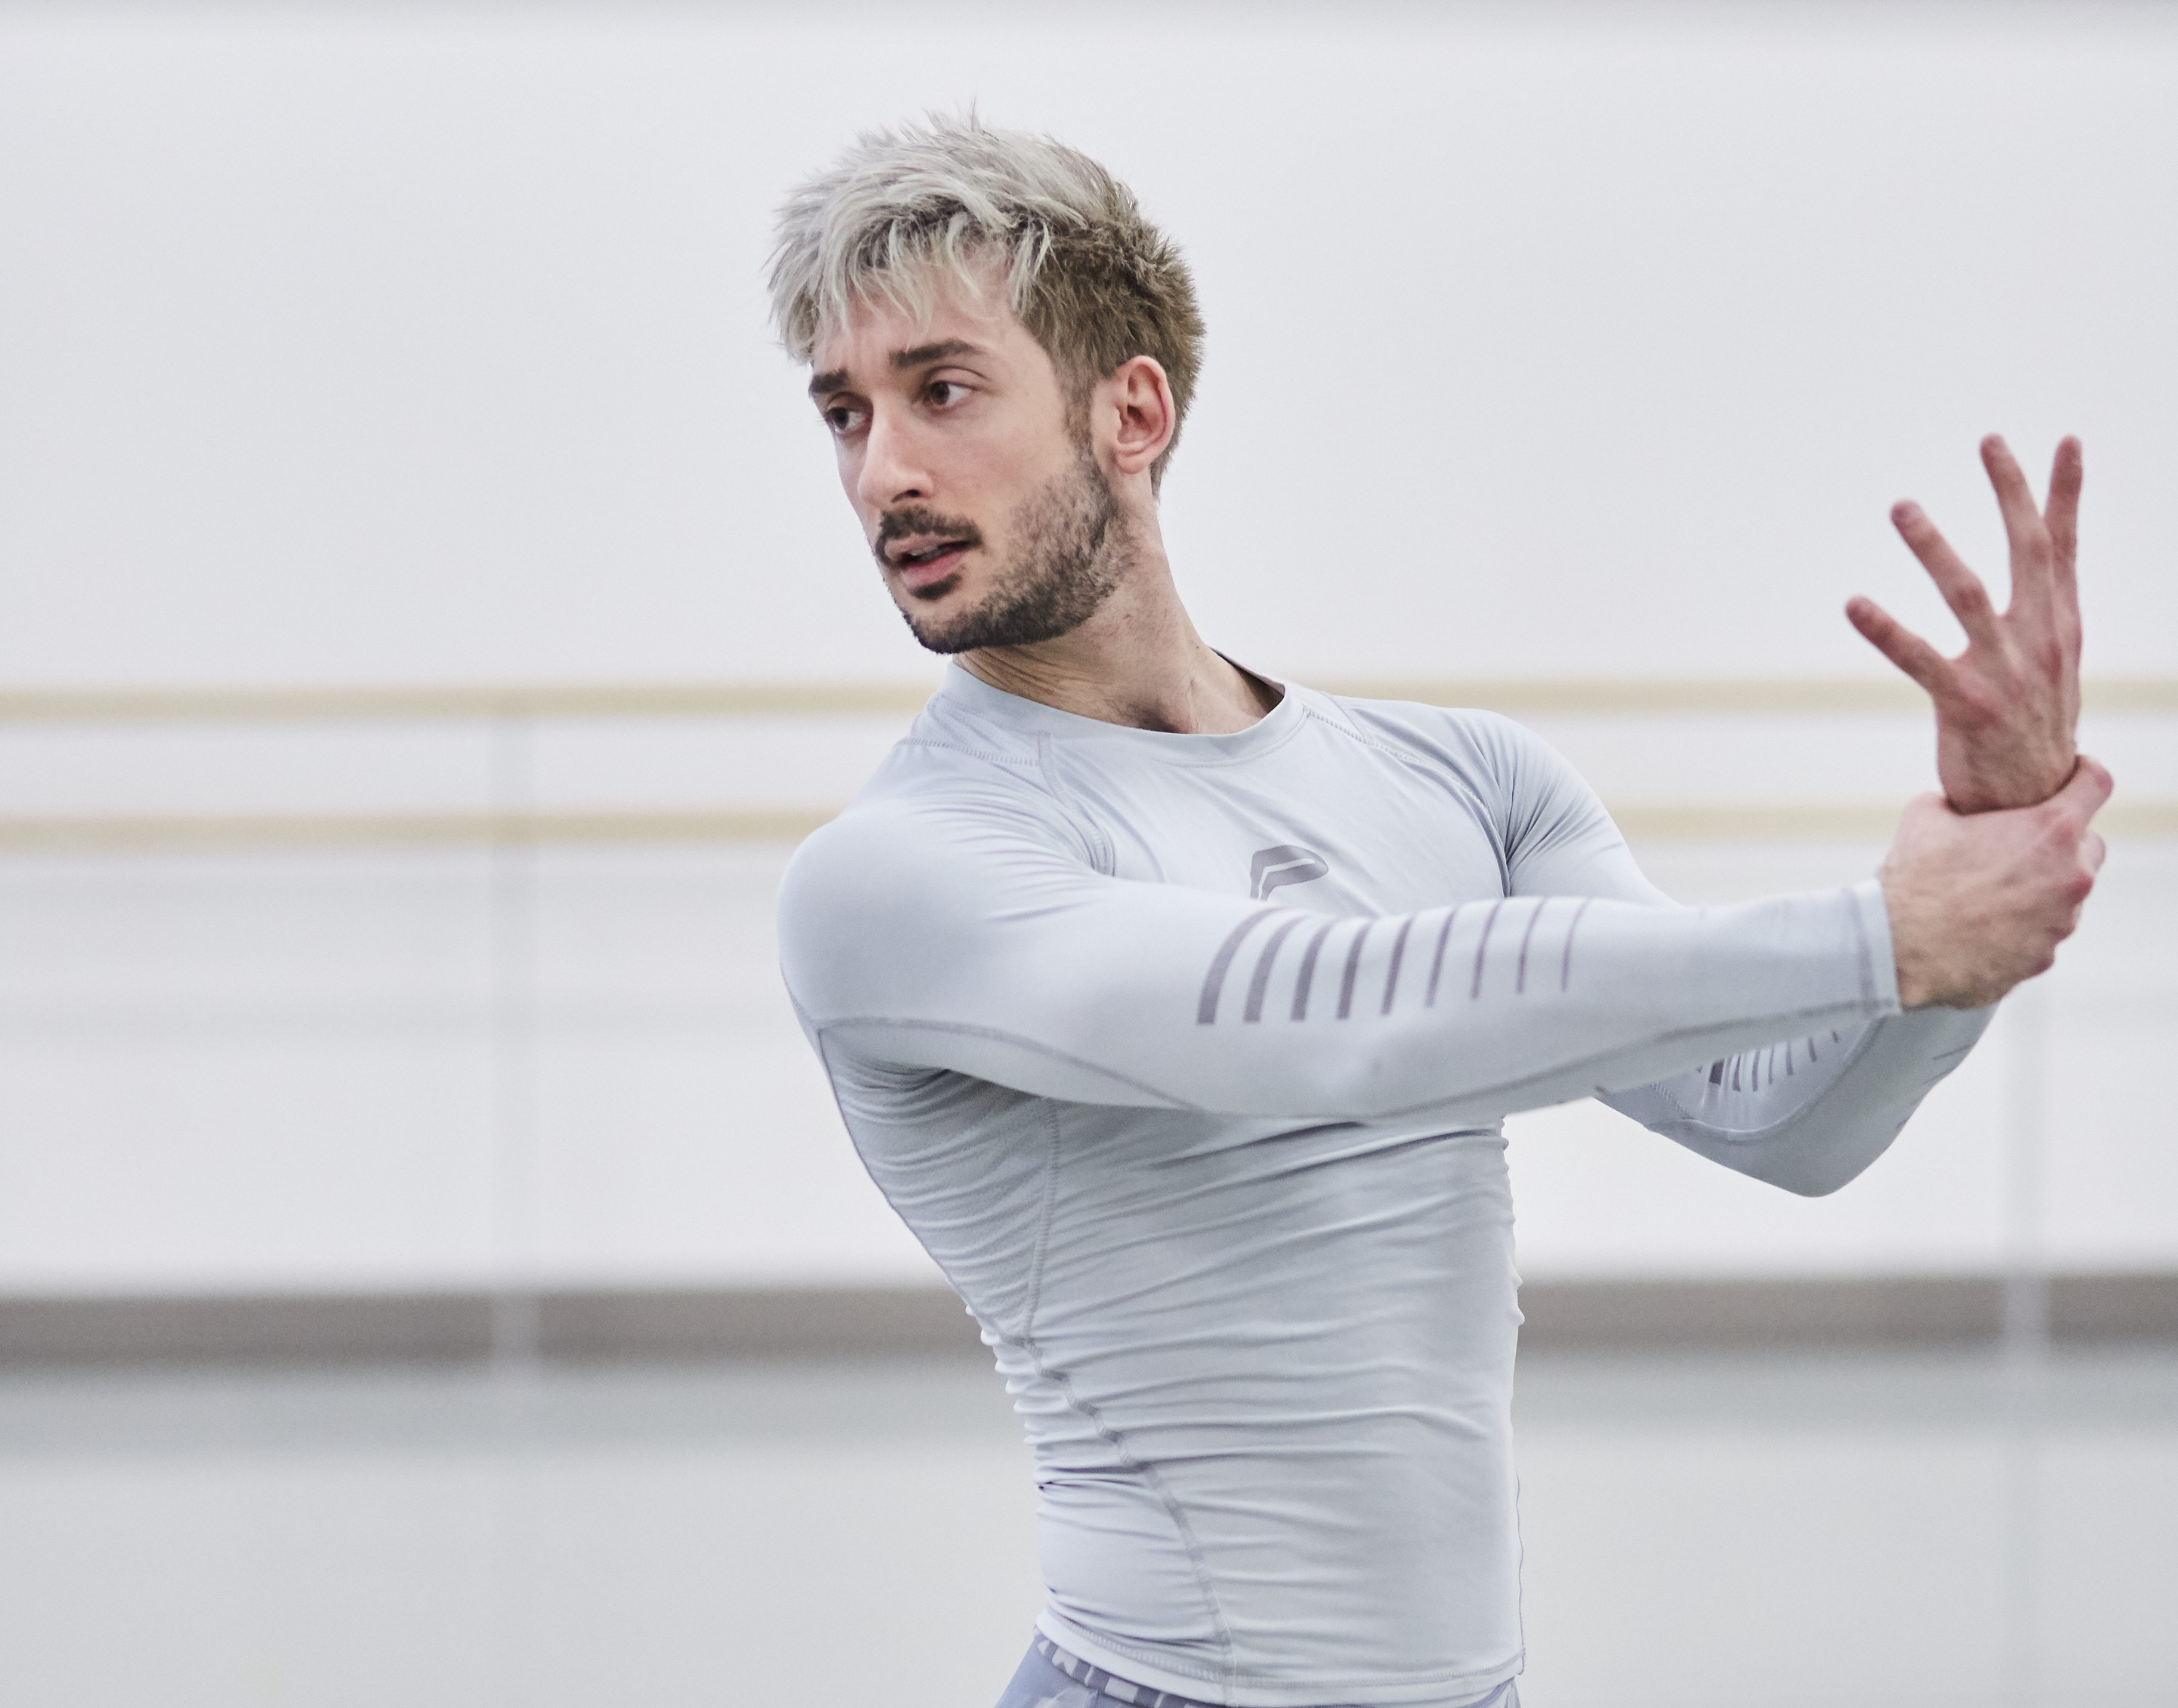 Northern Ballet dancer Giuliano Contadini rehearsing Casanova. Photo by Justin Slee.